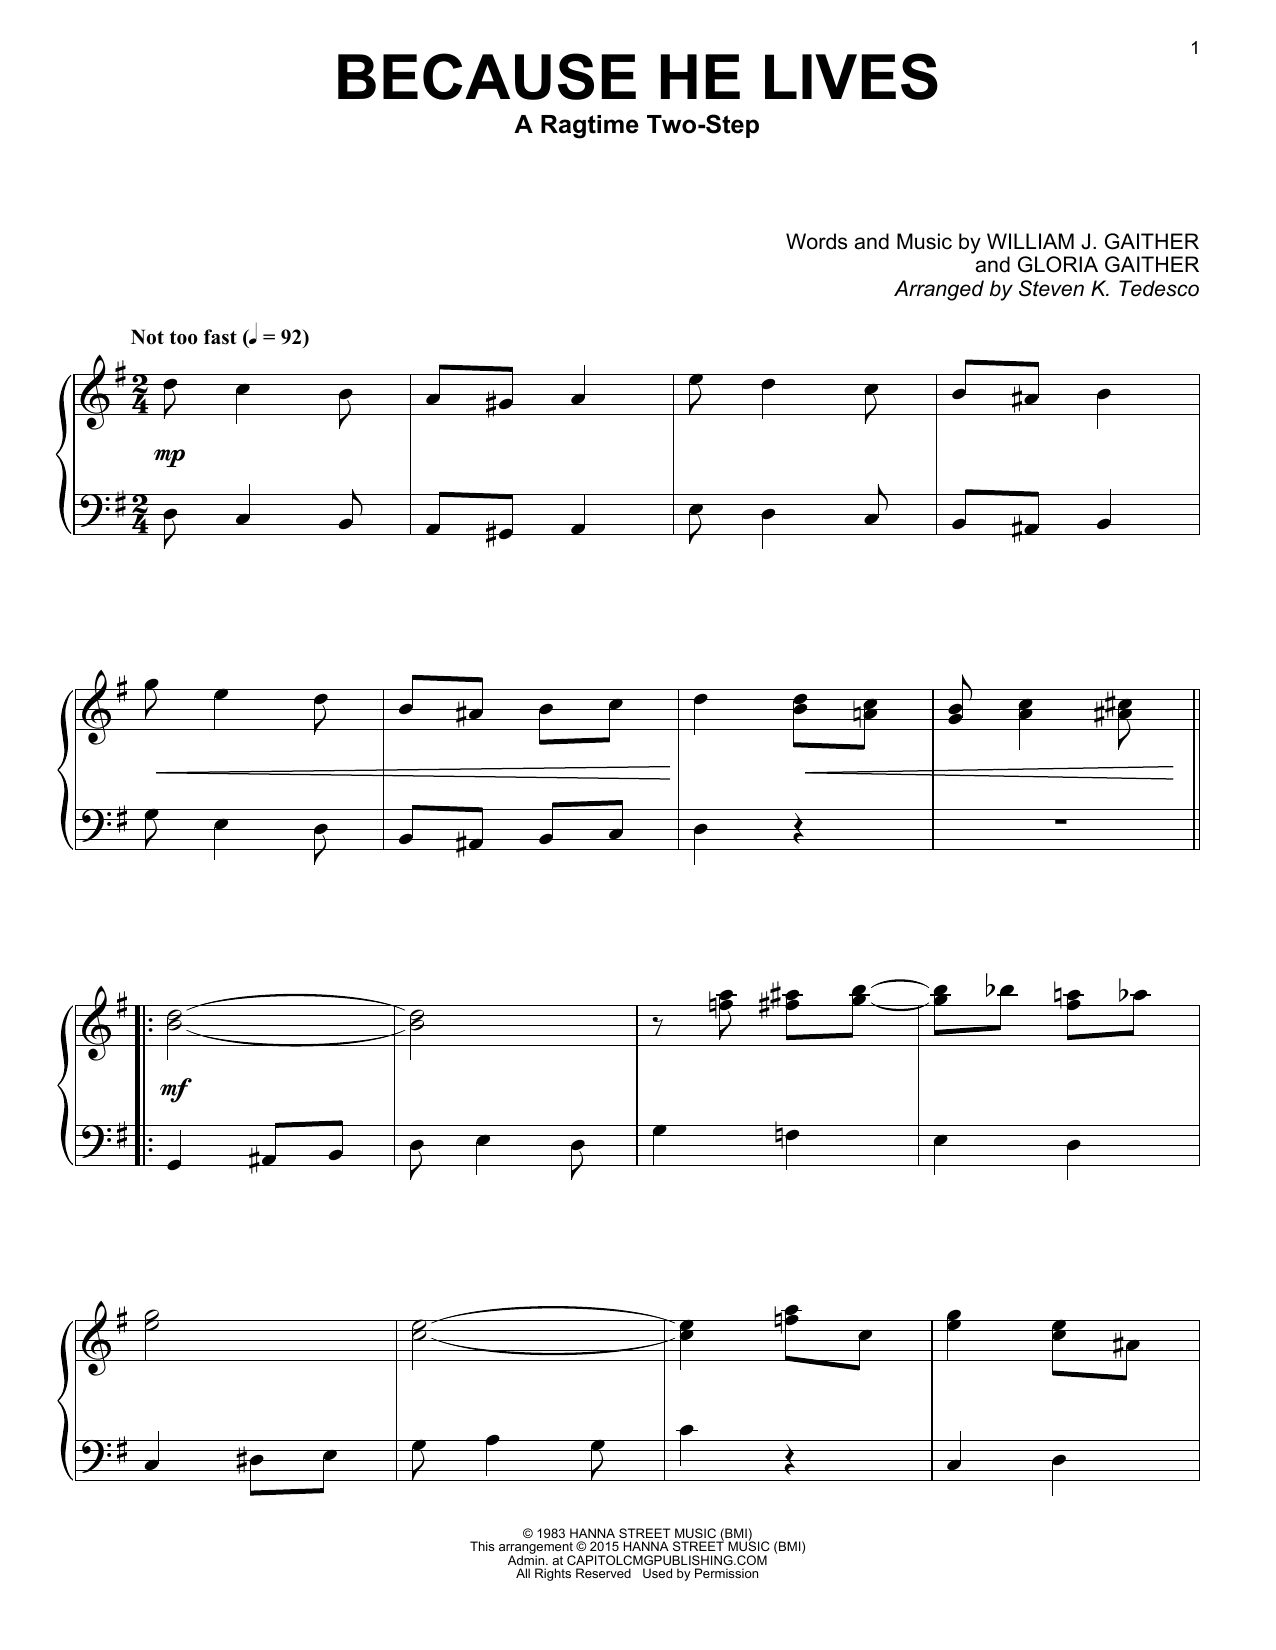 Because He Lives Chords Gaither Vocal Band Because He Lives Sheet Music Notes Chords Download Printable Piano Solo Sku 162421